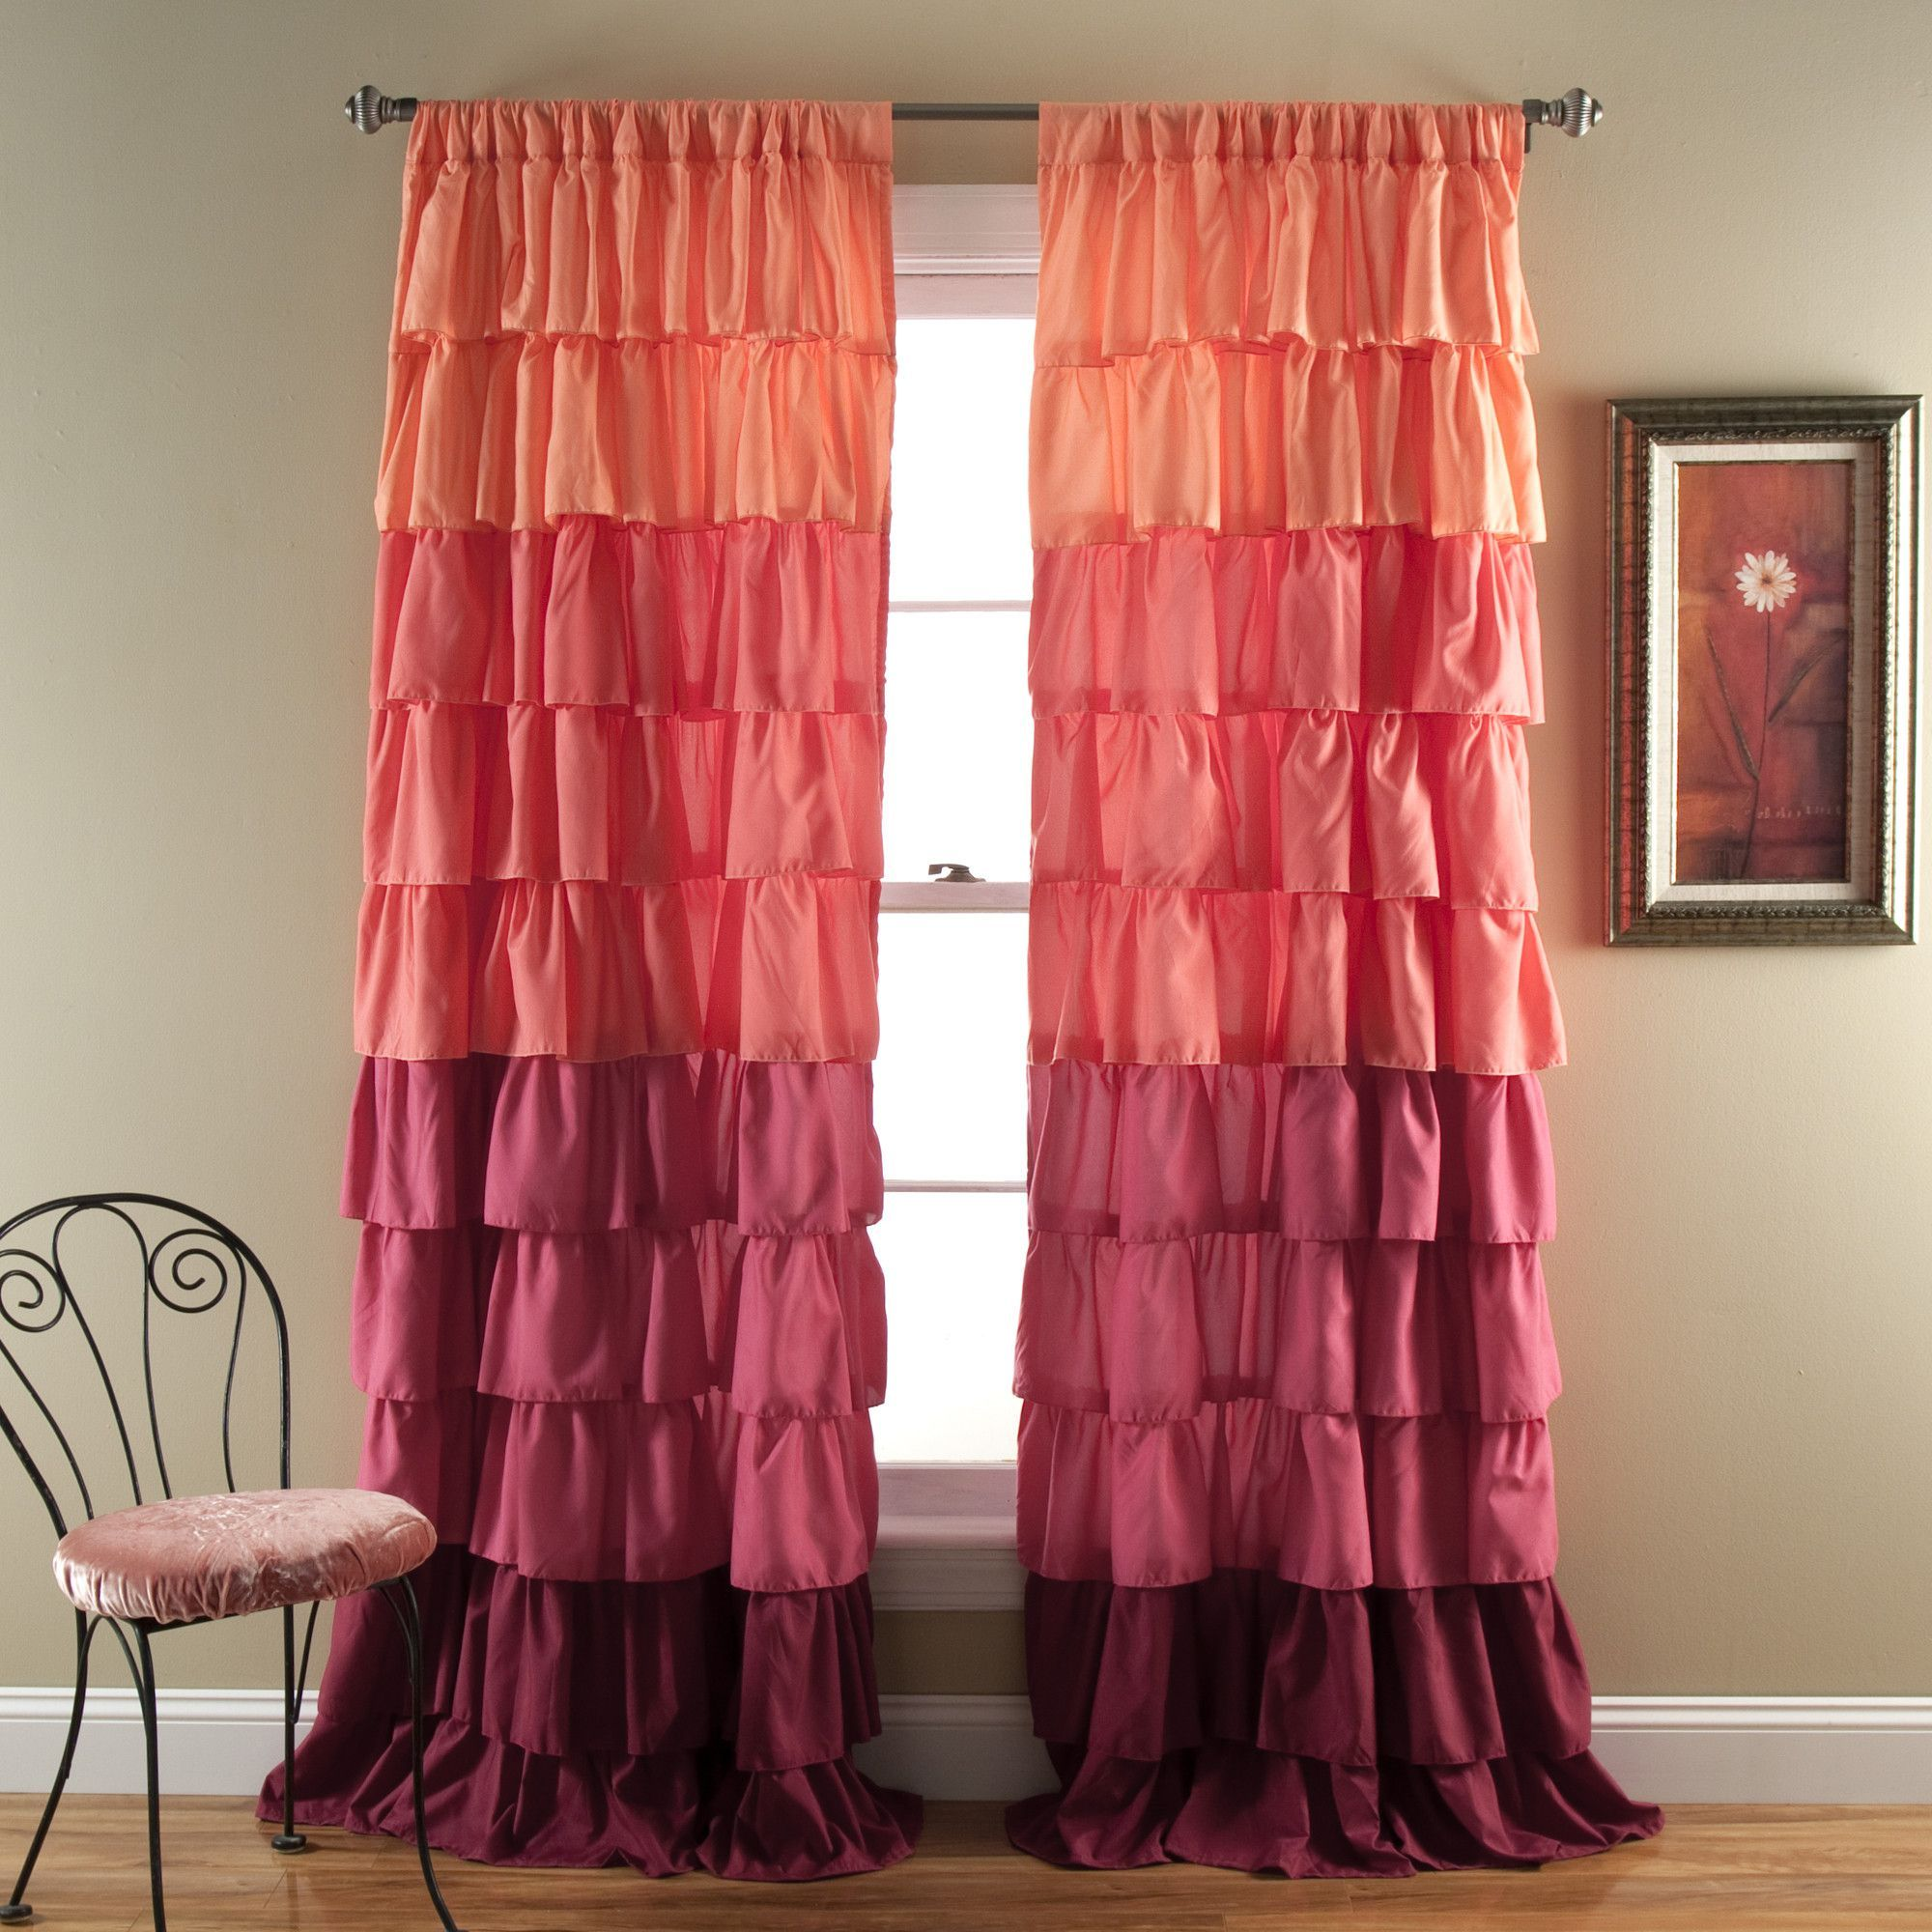 Ruffle window curtain window curtains window and products